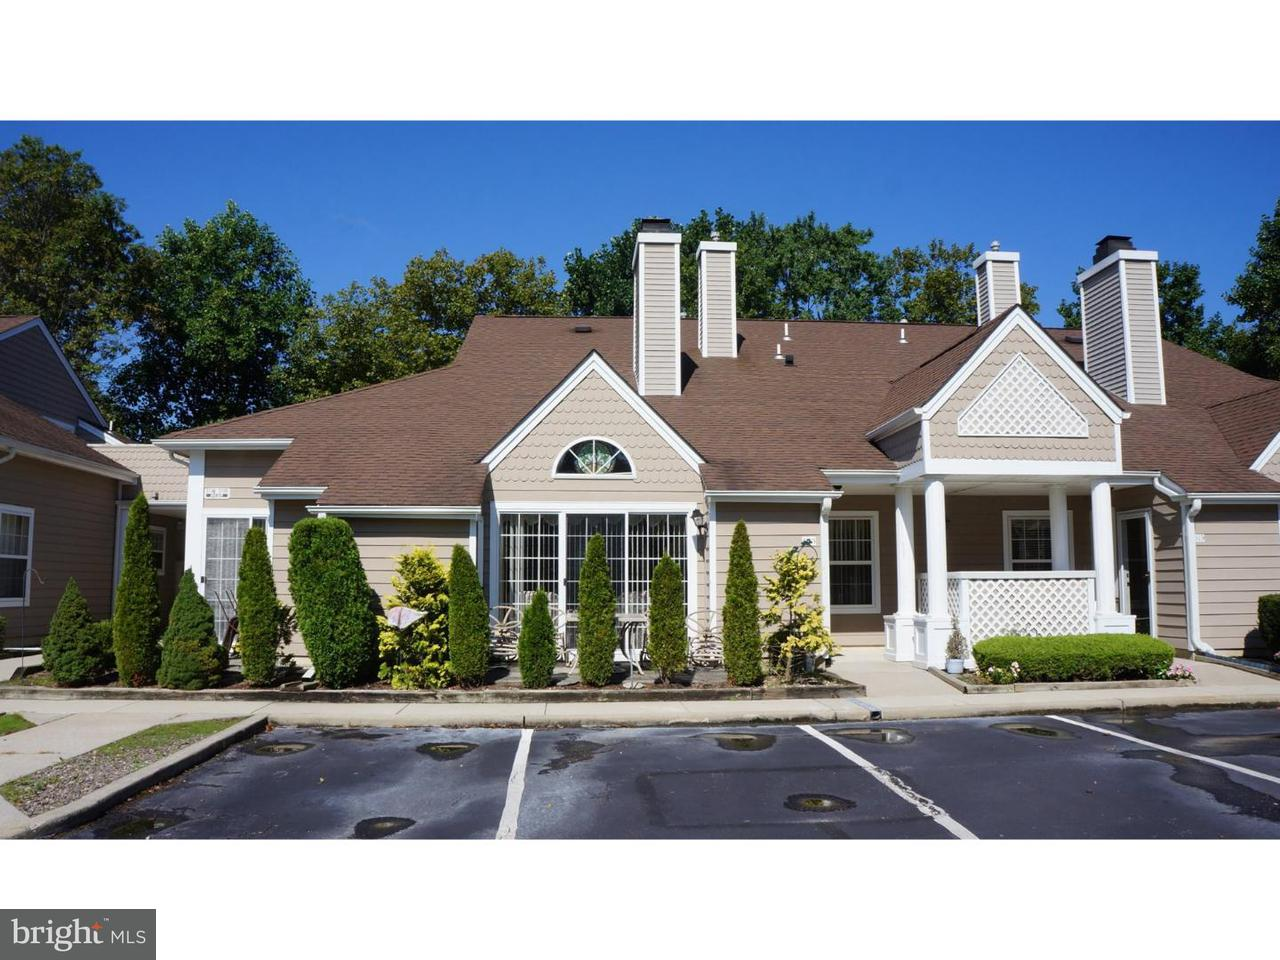 Condominium for Sale at 550 CENTRAL AVE #D-13 Linwood, New Jersey 08221 United States